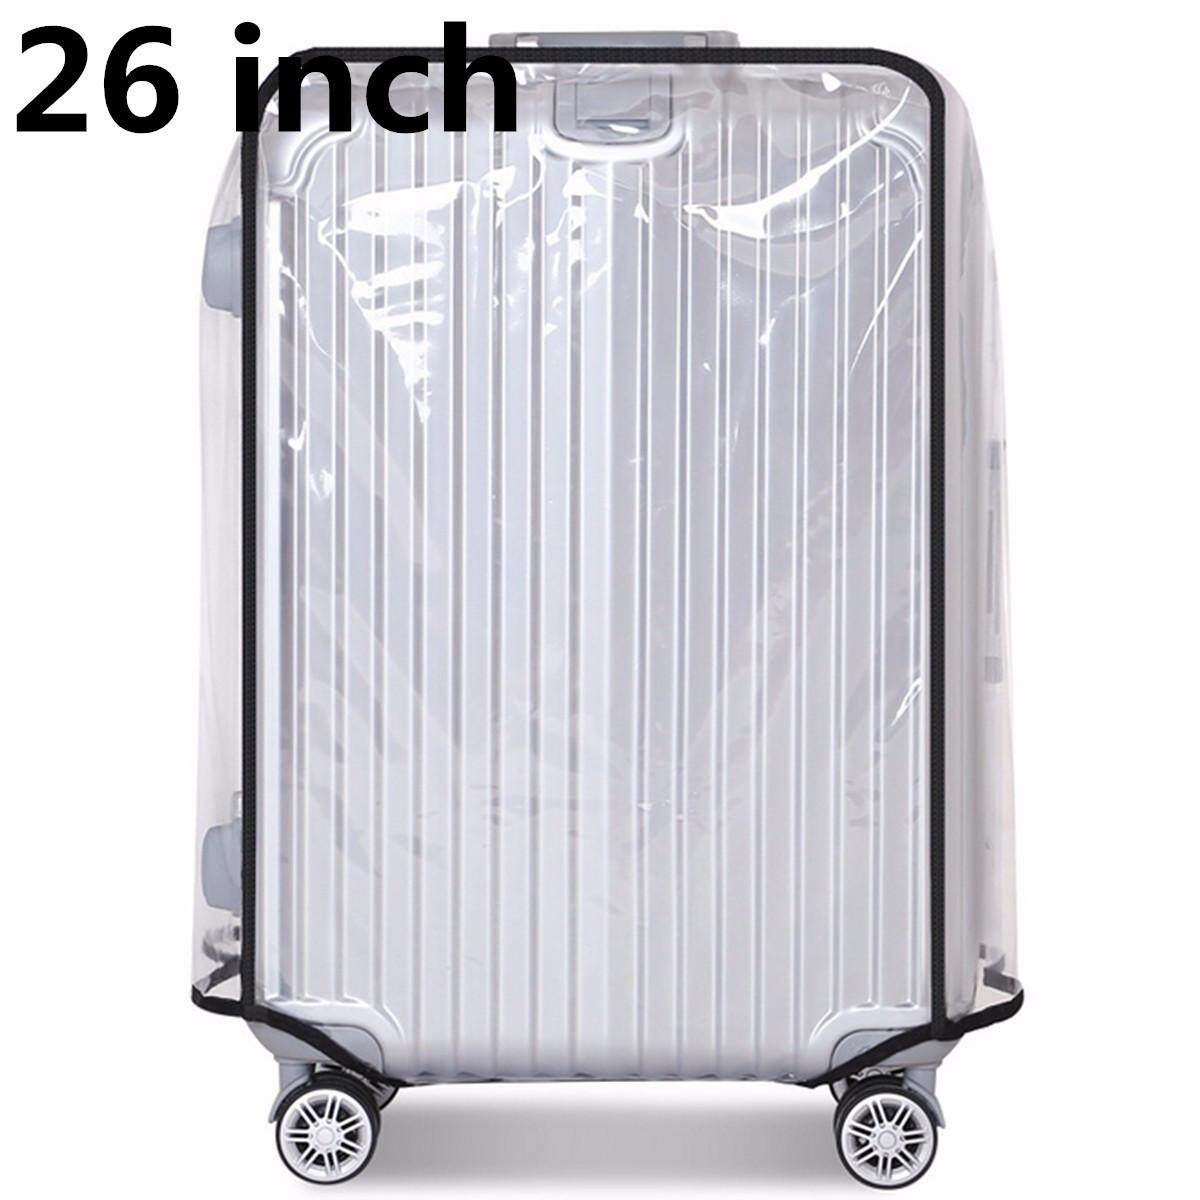 26 inch PVC Transparent Travel Luggage Protector Suitcase Cover Usable Waterproof fashionable #26inch